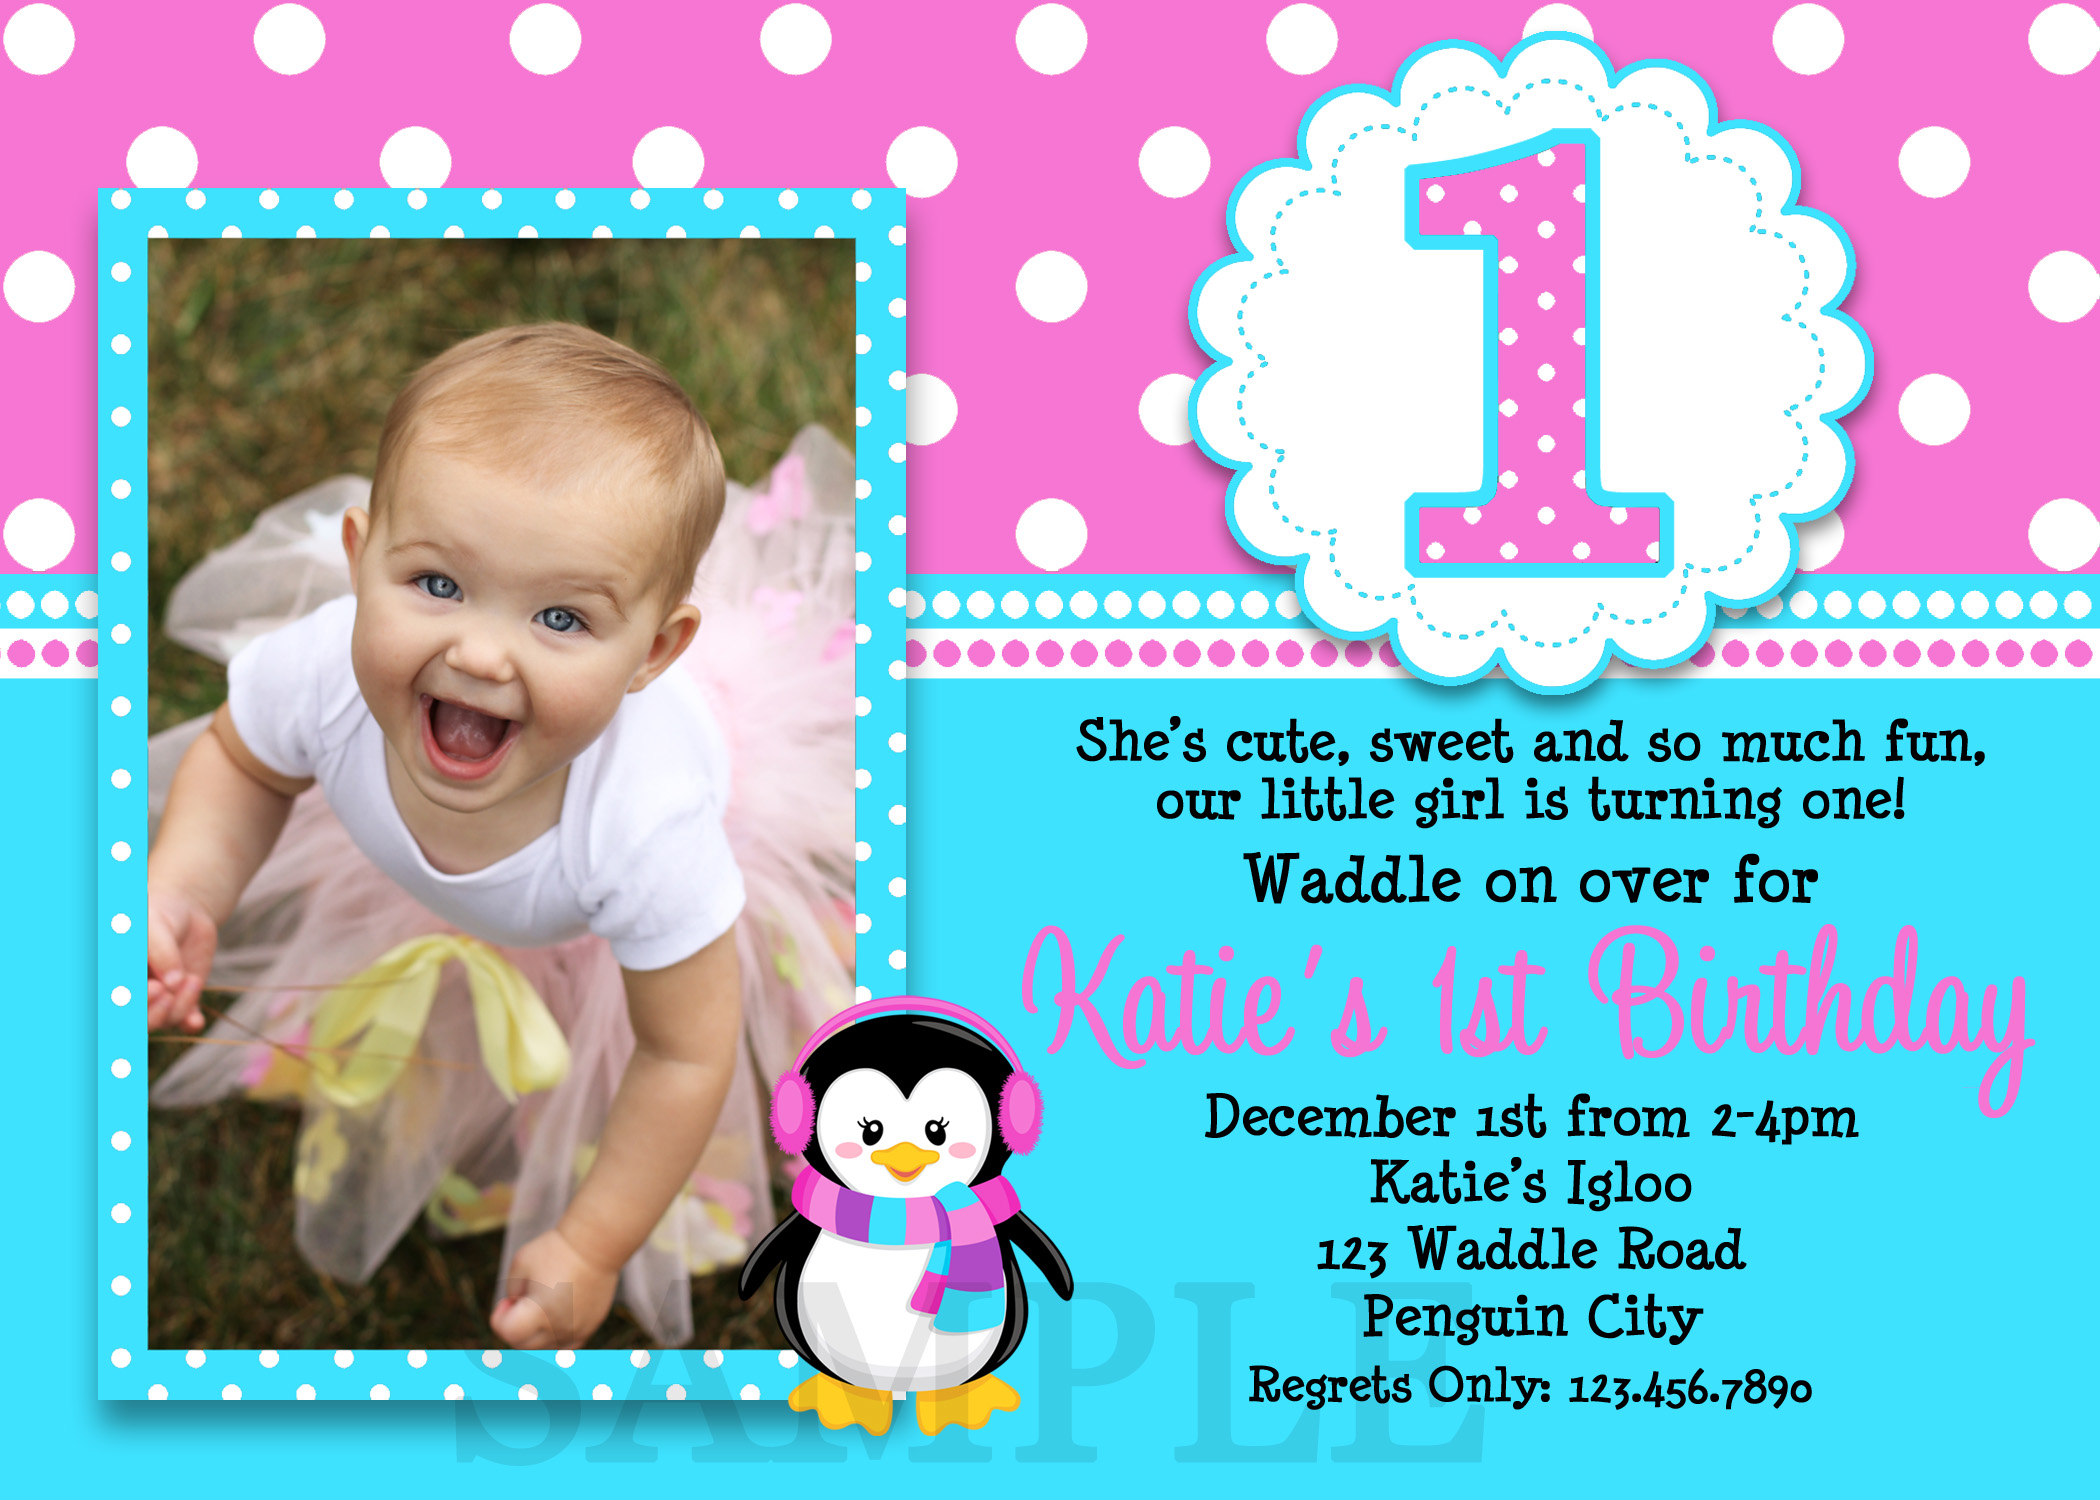 1st birthday photo invitations ; 1st-birthday-invitations-girl-to-inspire-you-how-to-create-the-Birthday-invitation-with-the-best-way-1